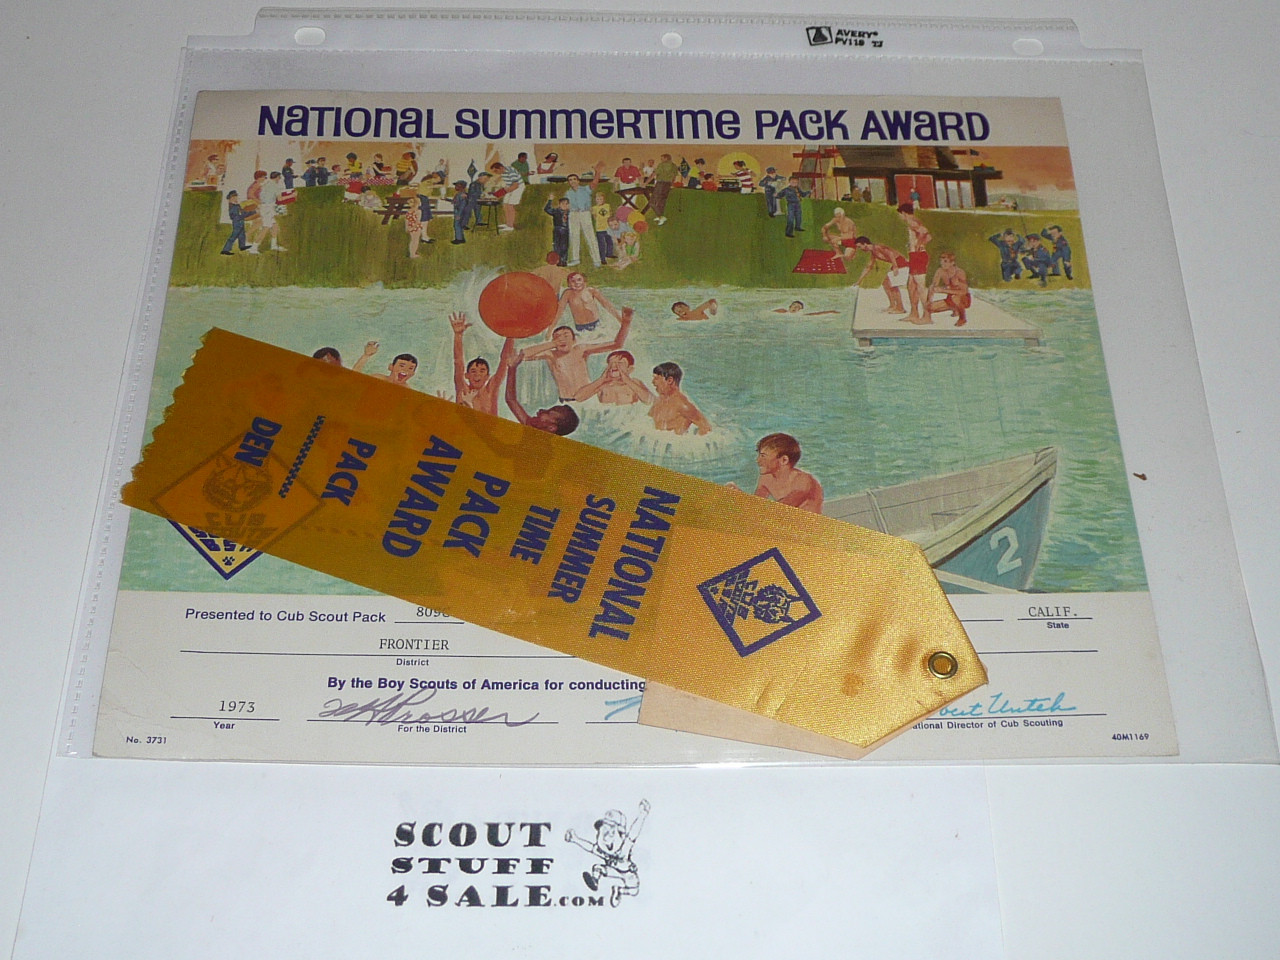 1973 National Summertime Pack Award Certificate with Ribbon, presented